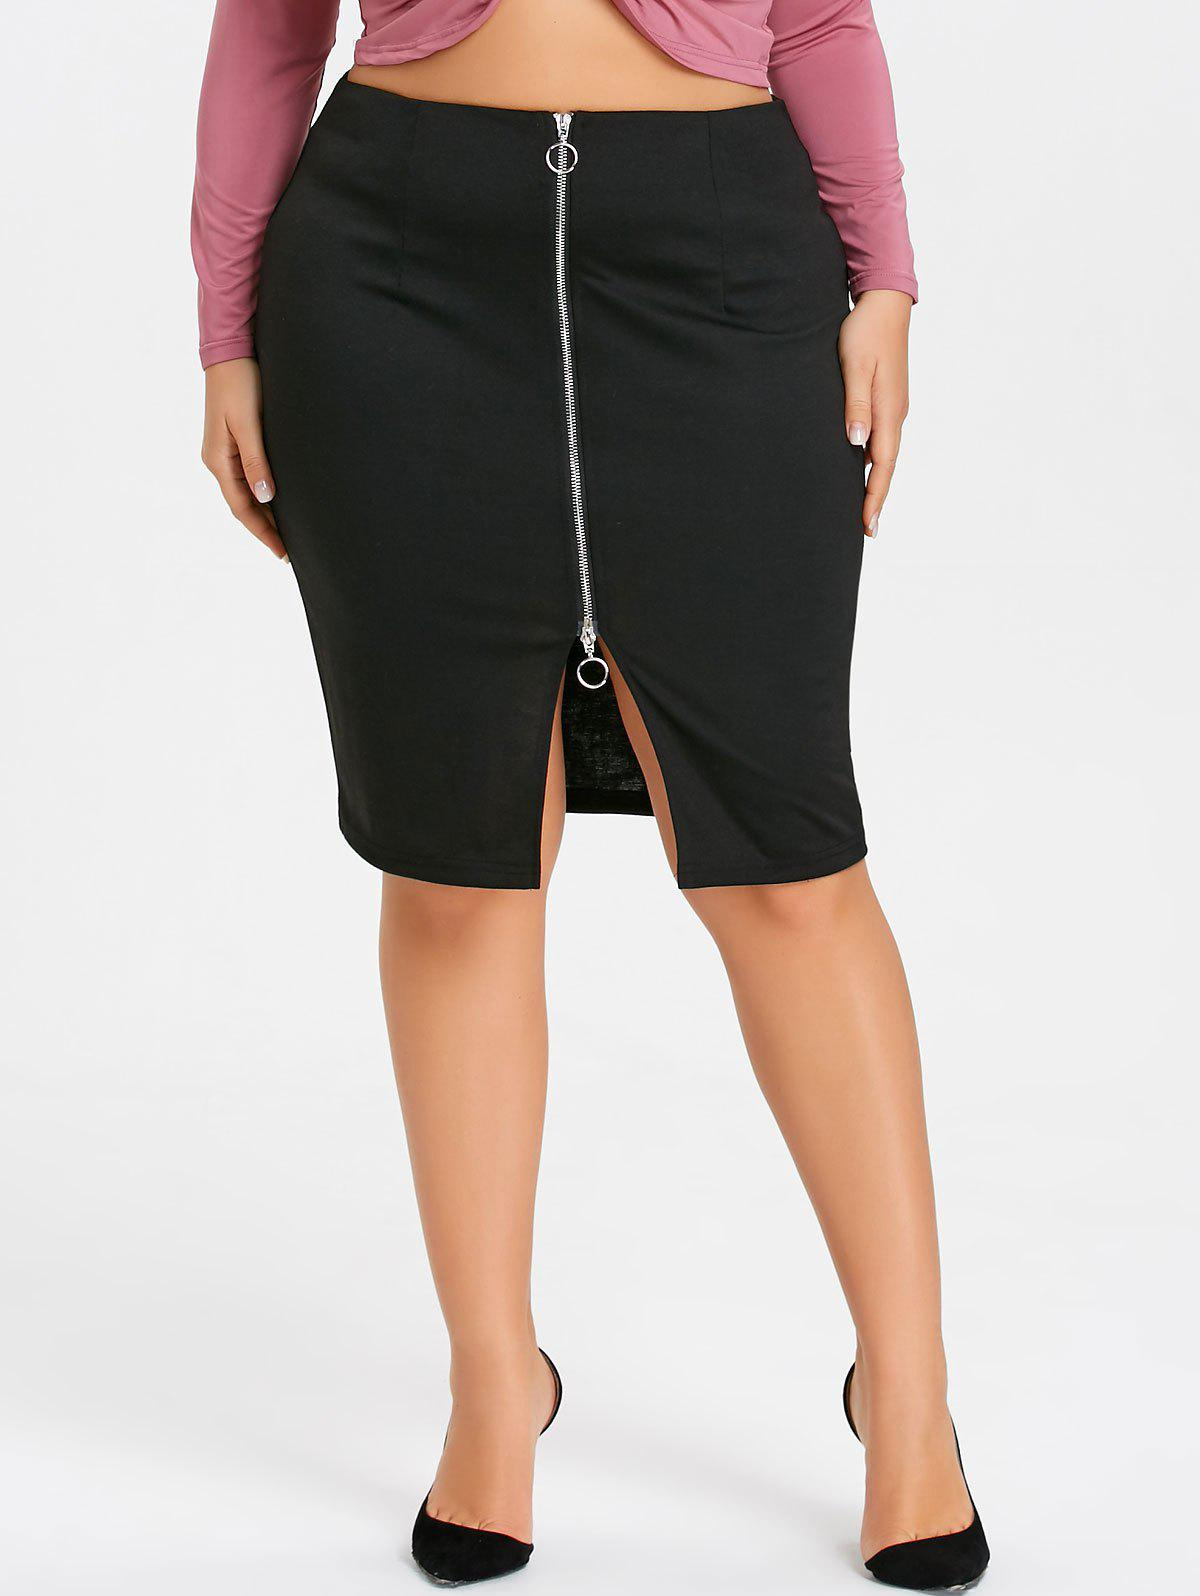 Buy Zippered Plus Size Pencil Skirt